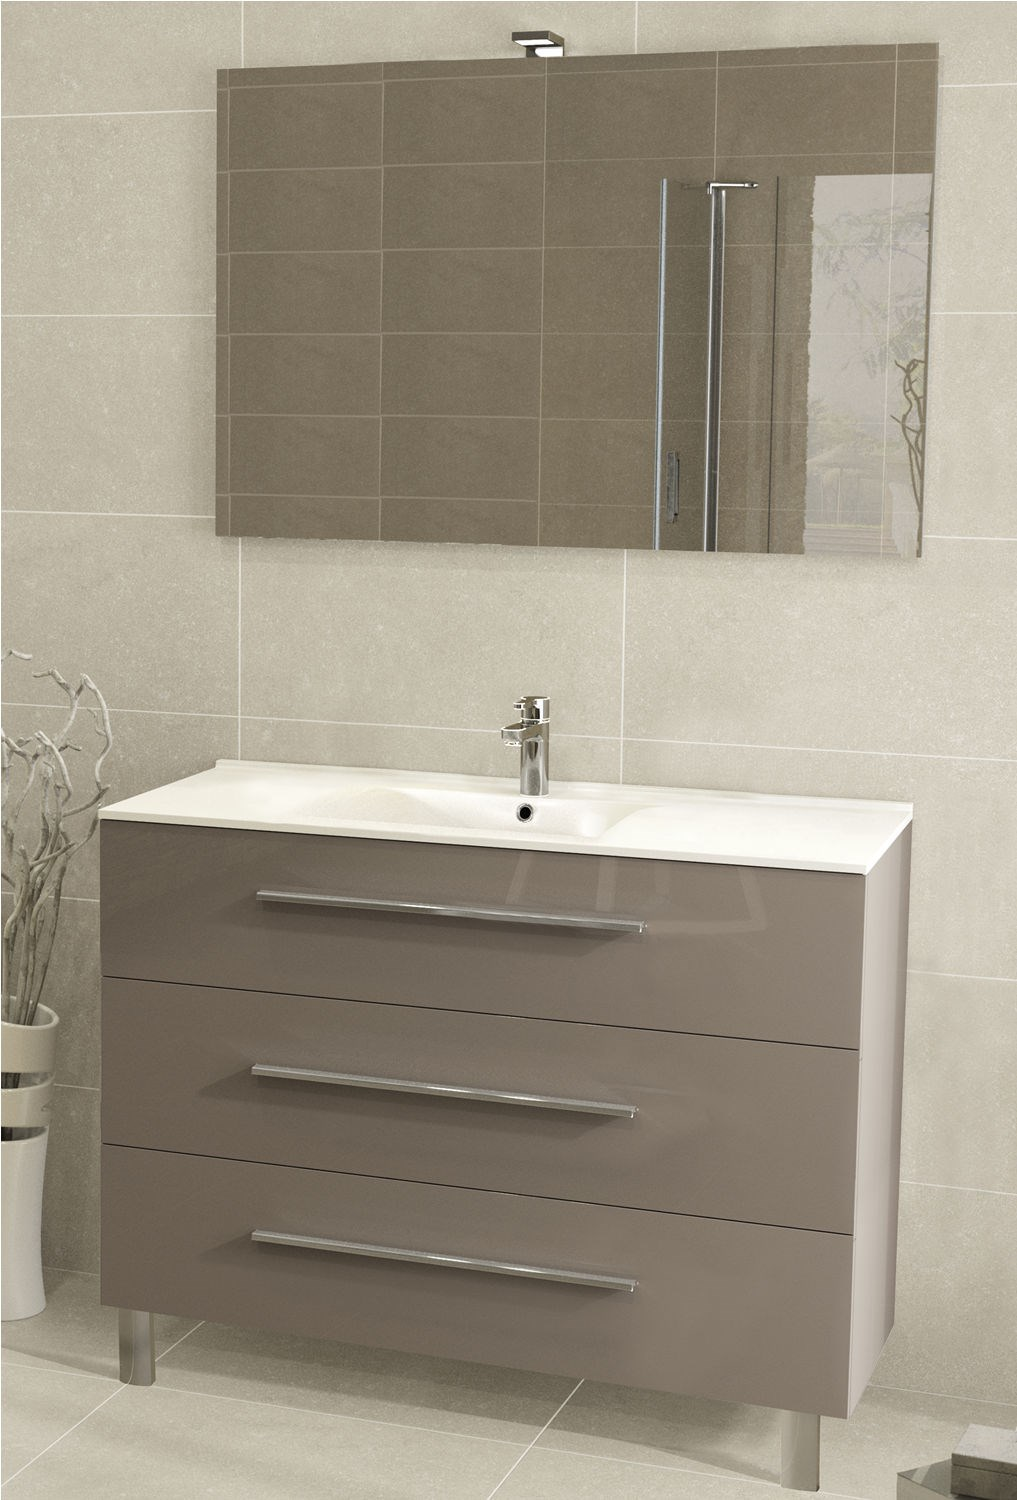 Stunning meuble double vasque 100 cm contemporary design for Meuble salle bain double vasque